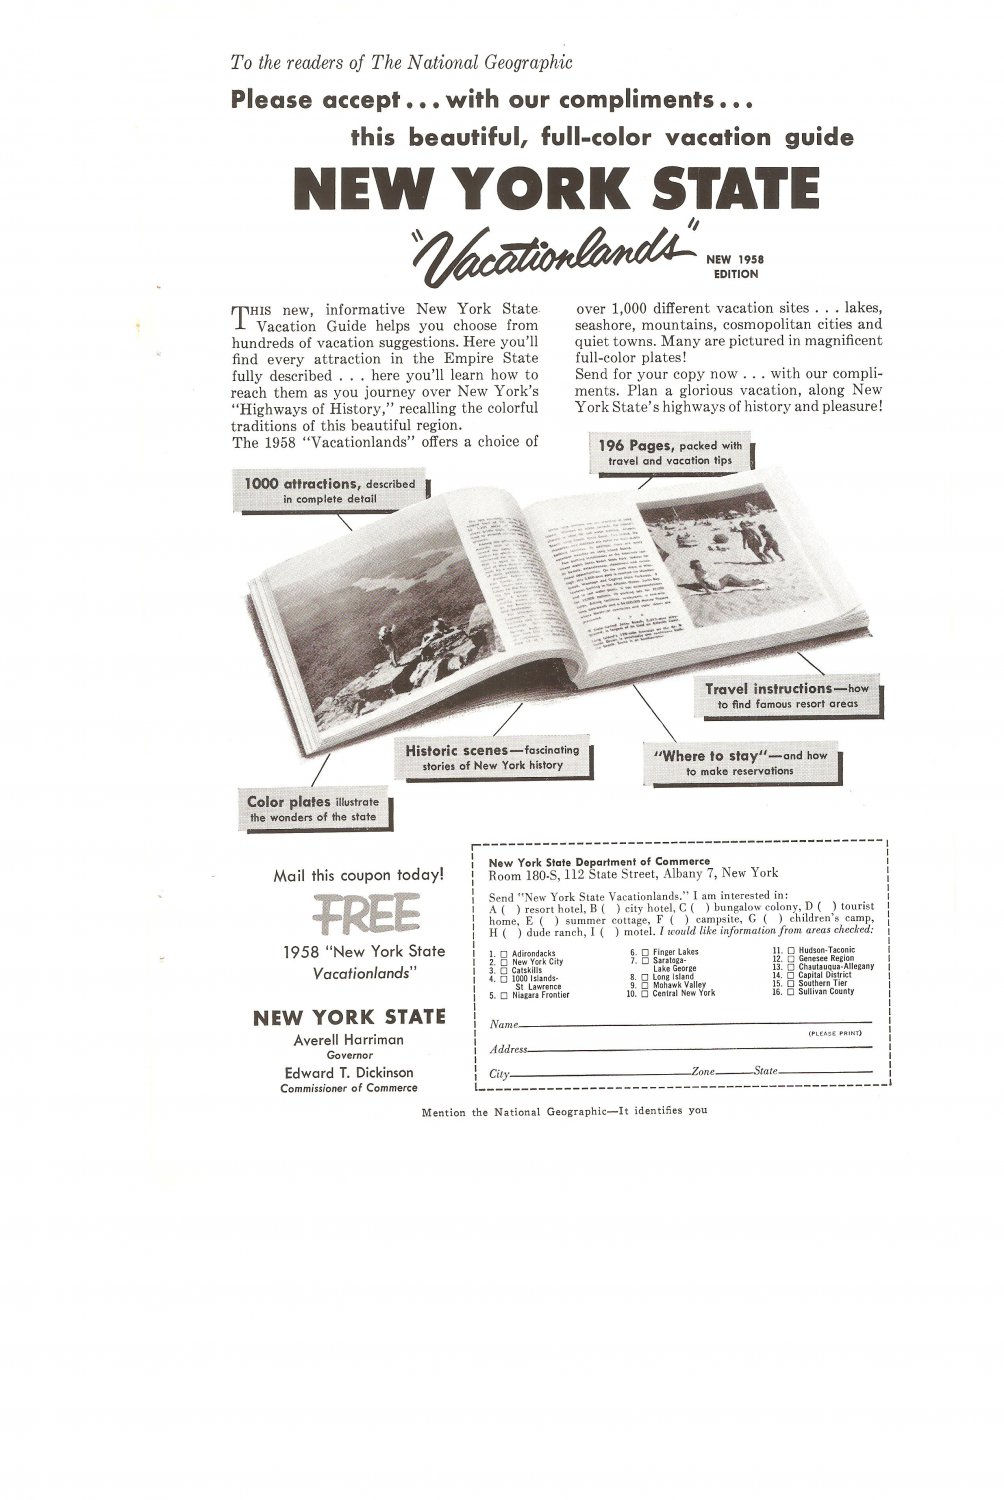 Vintage Ad New York State Vacationlands 1958